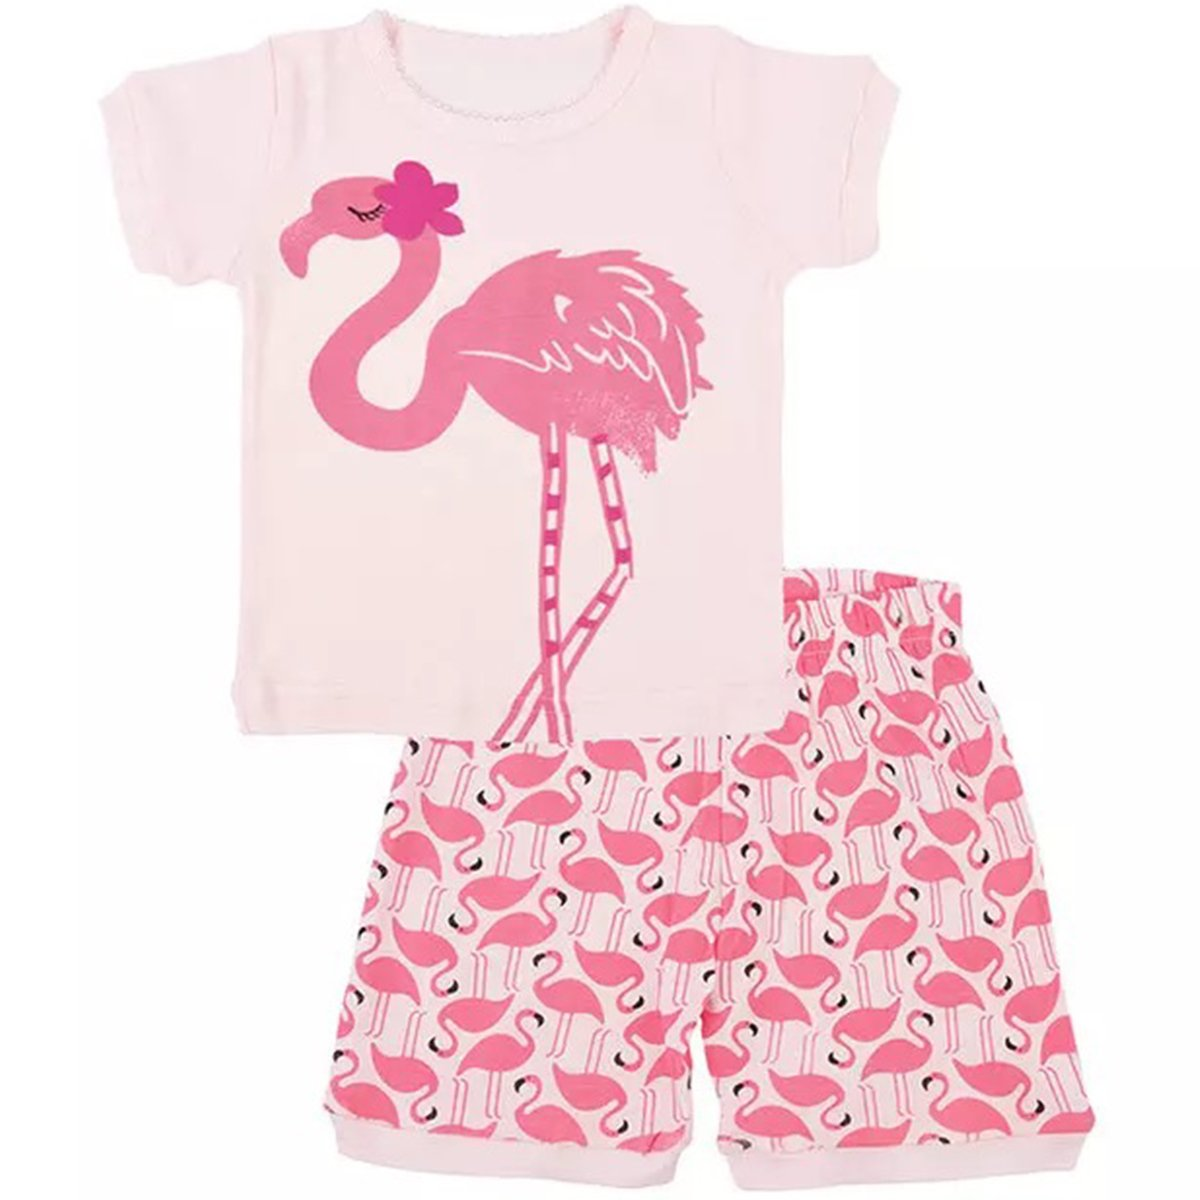 JAJADO Little Girls's Short Pajamas Cute Cotton Kids Toddler Summer Sleepwear Clothes PJS Sets Pink-Flamingo 12-24 Months